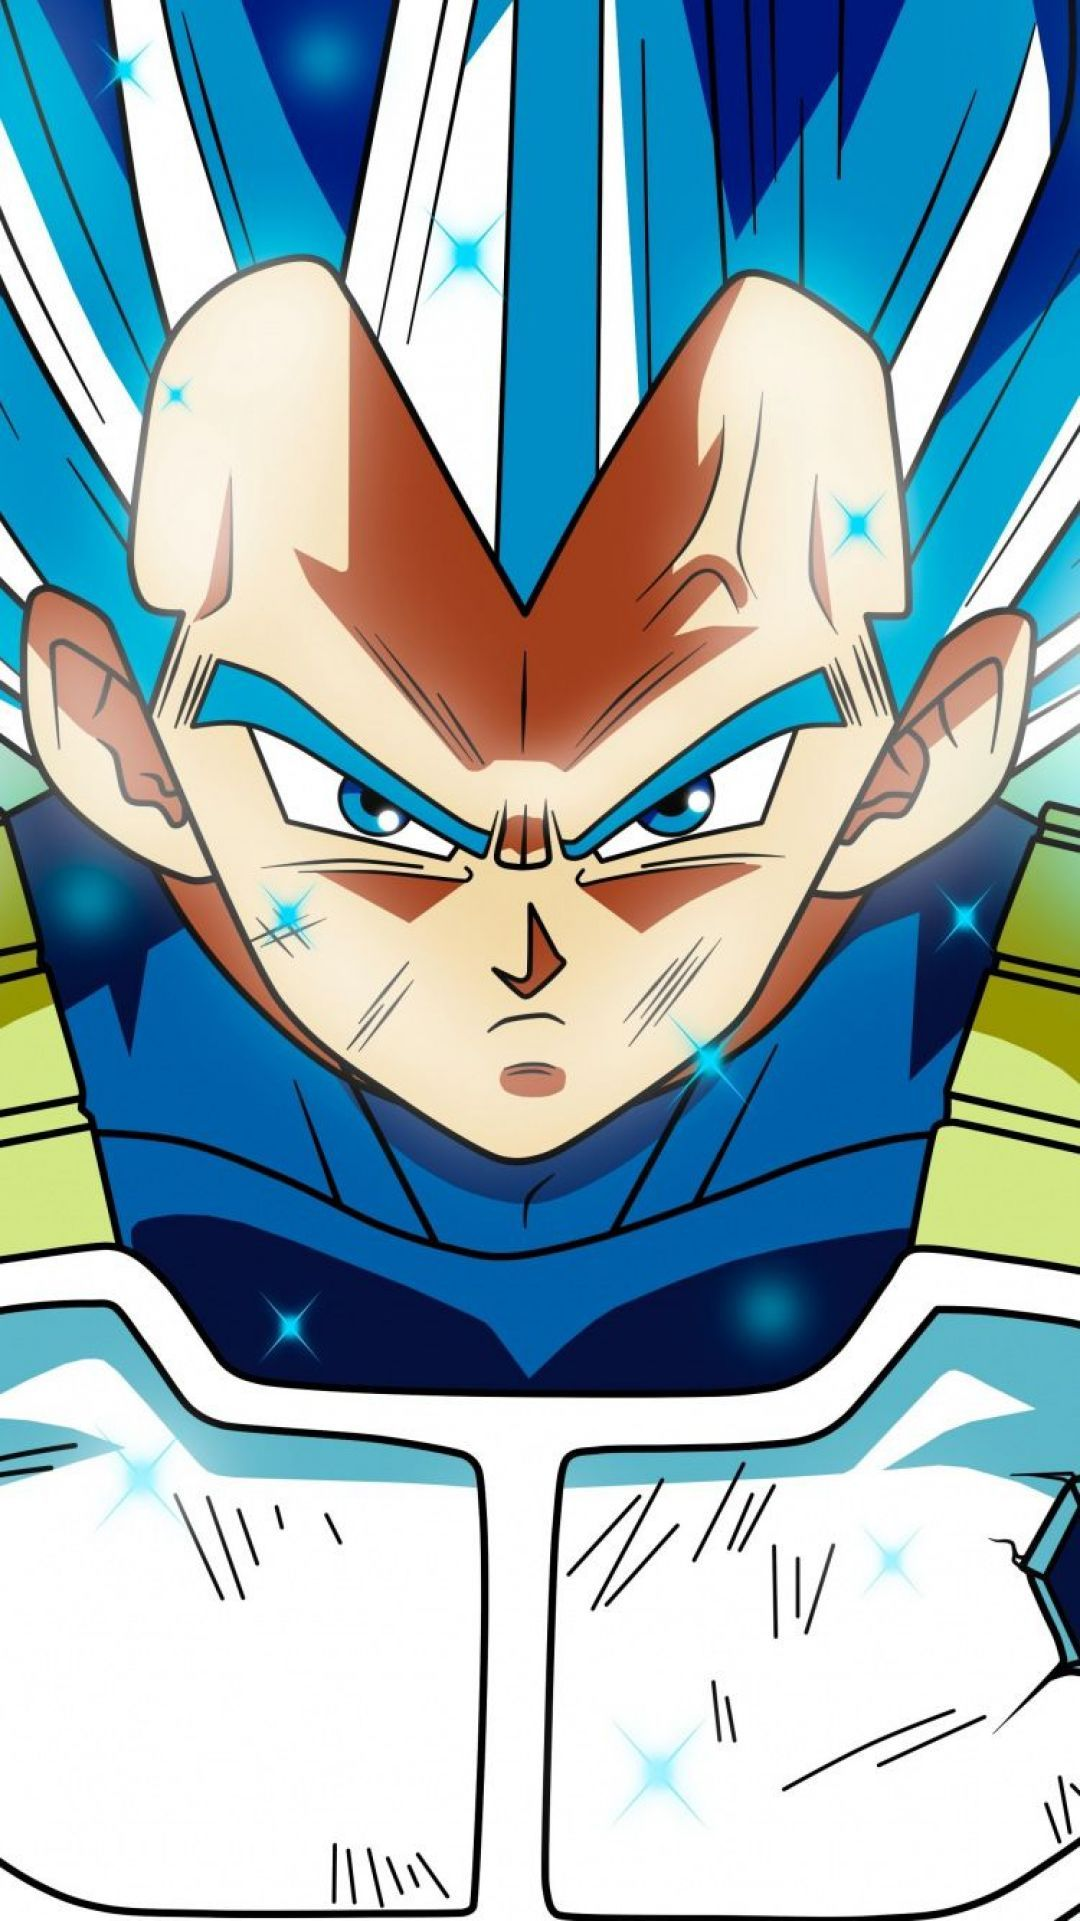 Vegeta Android Iphone Desktop Hd Backgrounds Wallpapers 1080p 4k 107384 Hdwa Anime Dragon Ball Super Dragon Ball Wallpapers Dragon Ball Super Goku